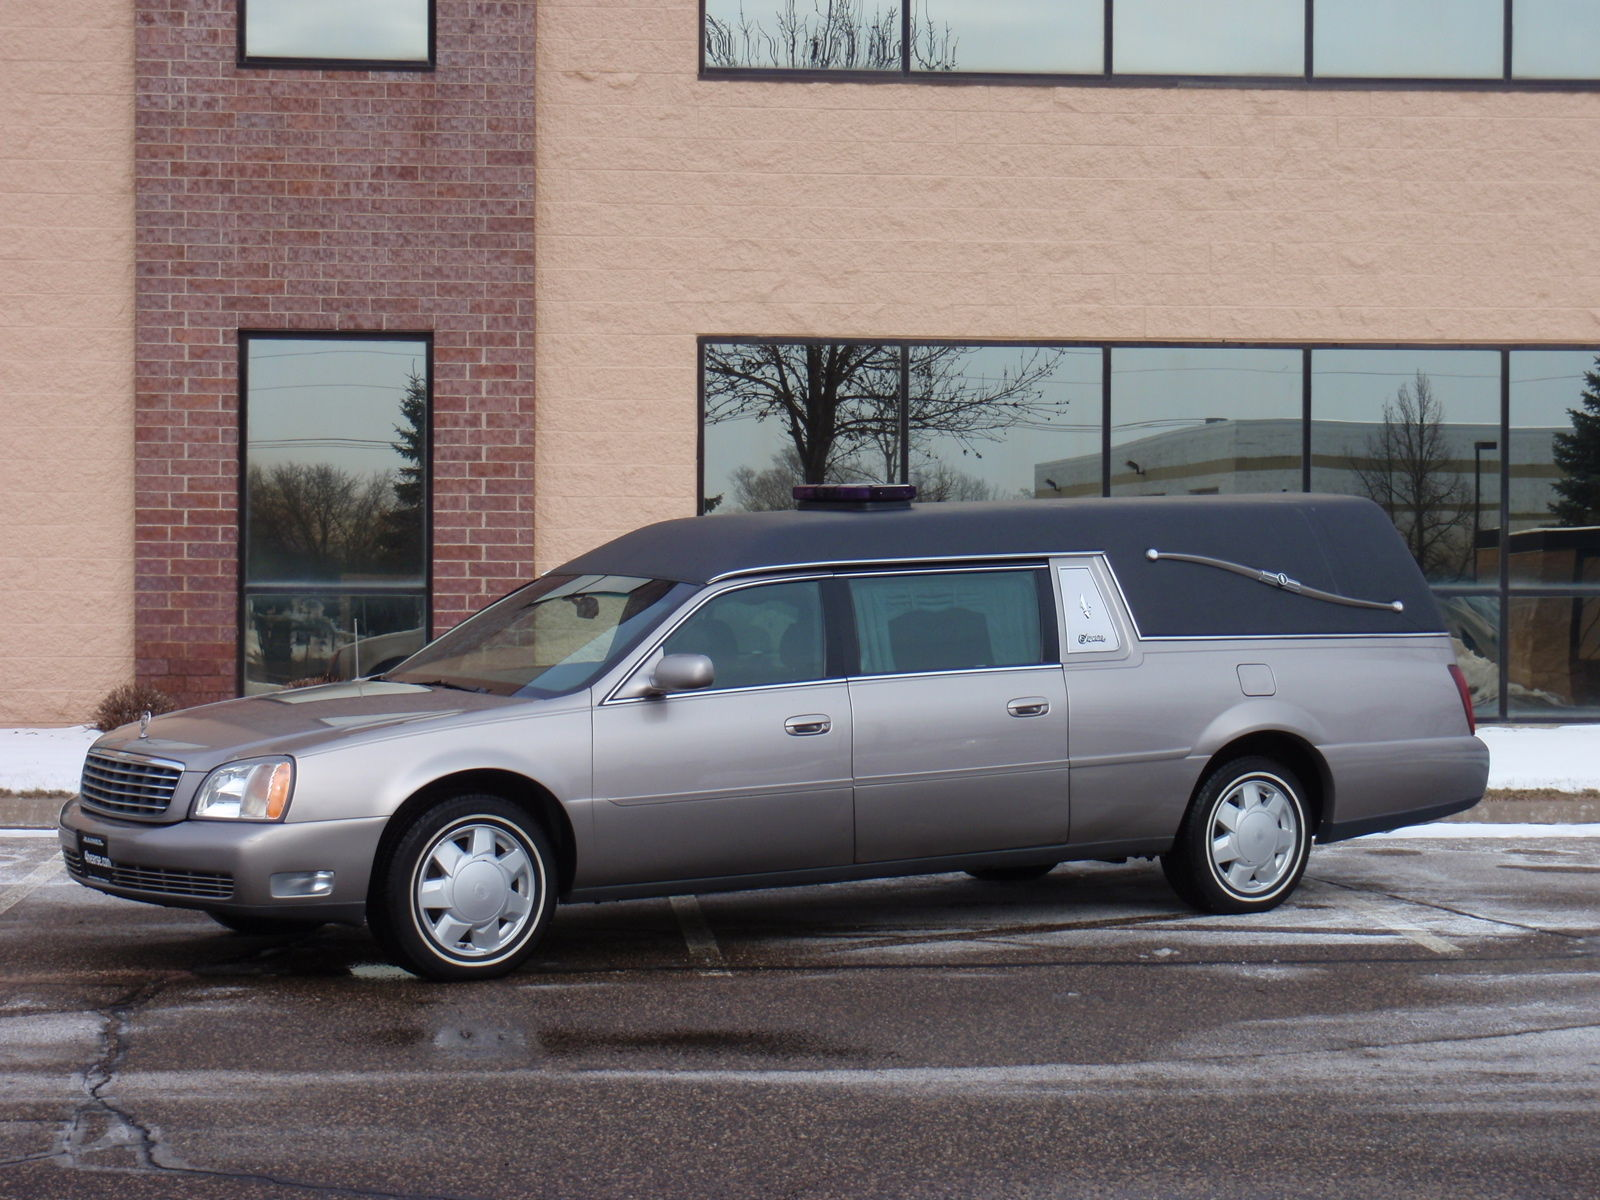 Cadillac Dts Swangas further 2006 Cadillac Escalade Pictures C1451 besides 2000 Superior Cadillac Statesman Hearse Funeral Coach further 2002 Cadillac Escalade Pictures C1480 also Under 7000. on 2000 black cadillac dts